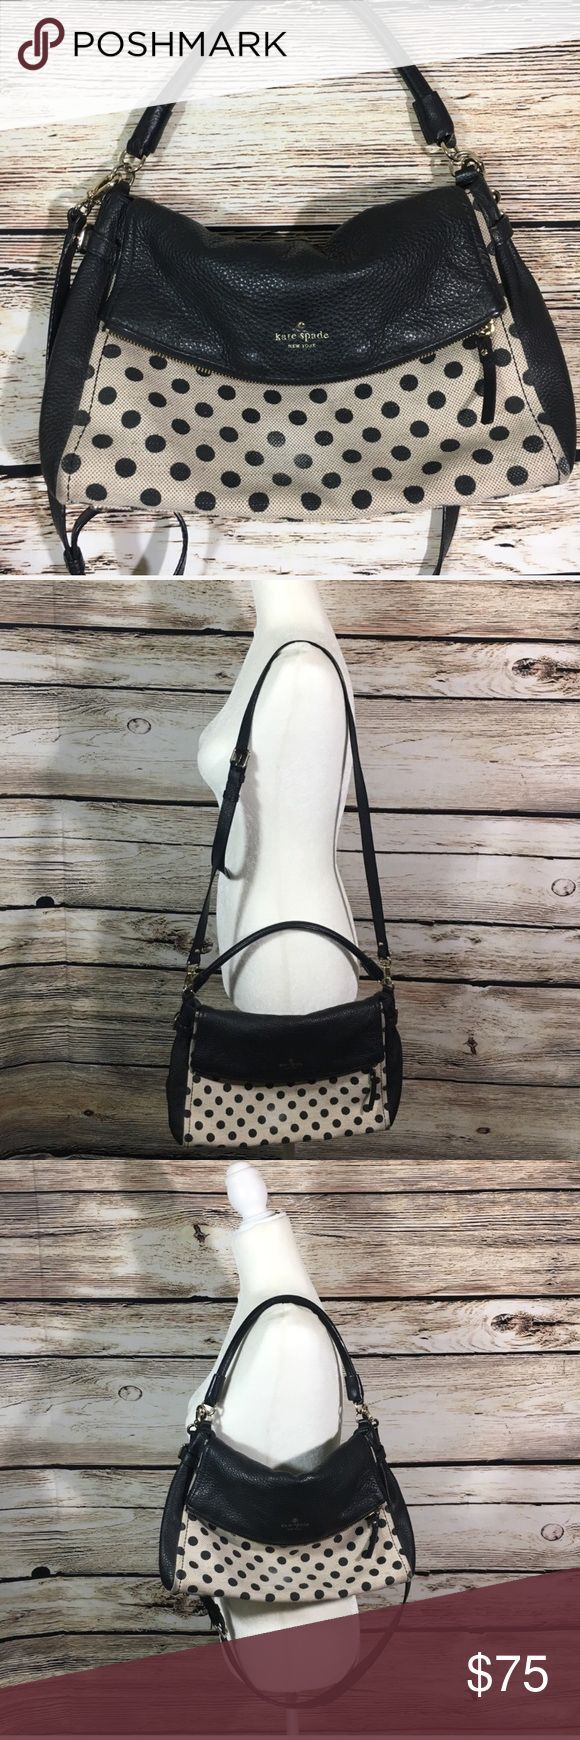 Kate Spade cobble hill canvas polka dot handbag Kate Spade New York Polka Dot Printed Handbag in black/cream, leather and canvas material. Two separate  compartments, one is magnetic closure and the other is zip. Large in size, dual strap, cross body strap is removable. Overall great condition with plenty of life left! Color is slightly faded on polka dots kate spade Bags Shoulder Bags